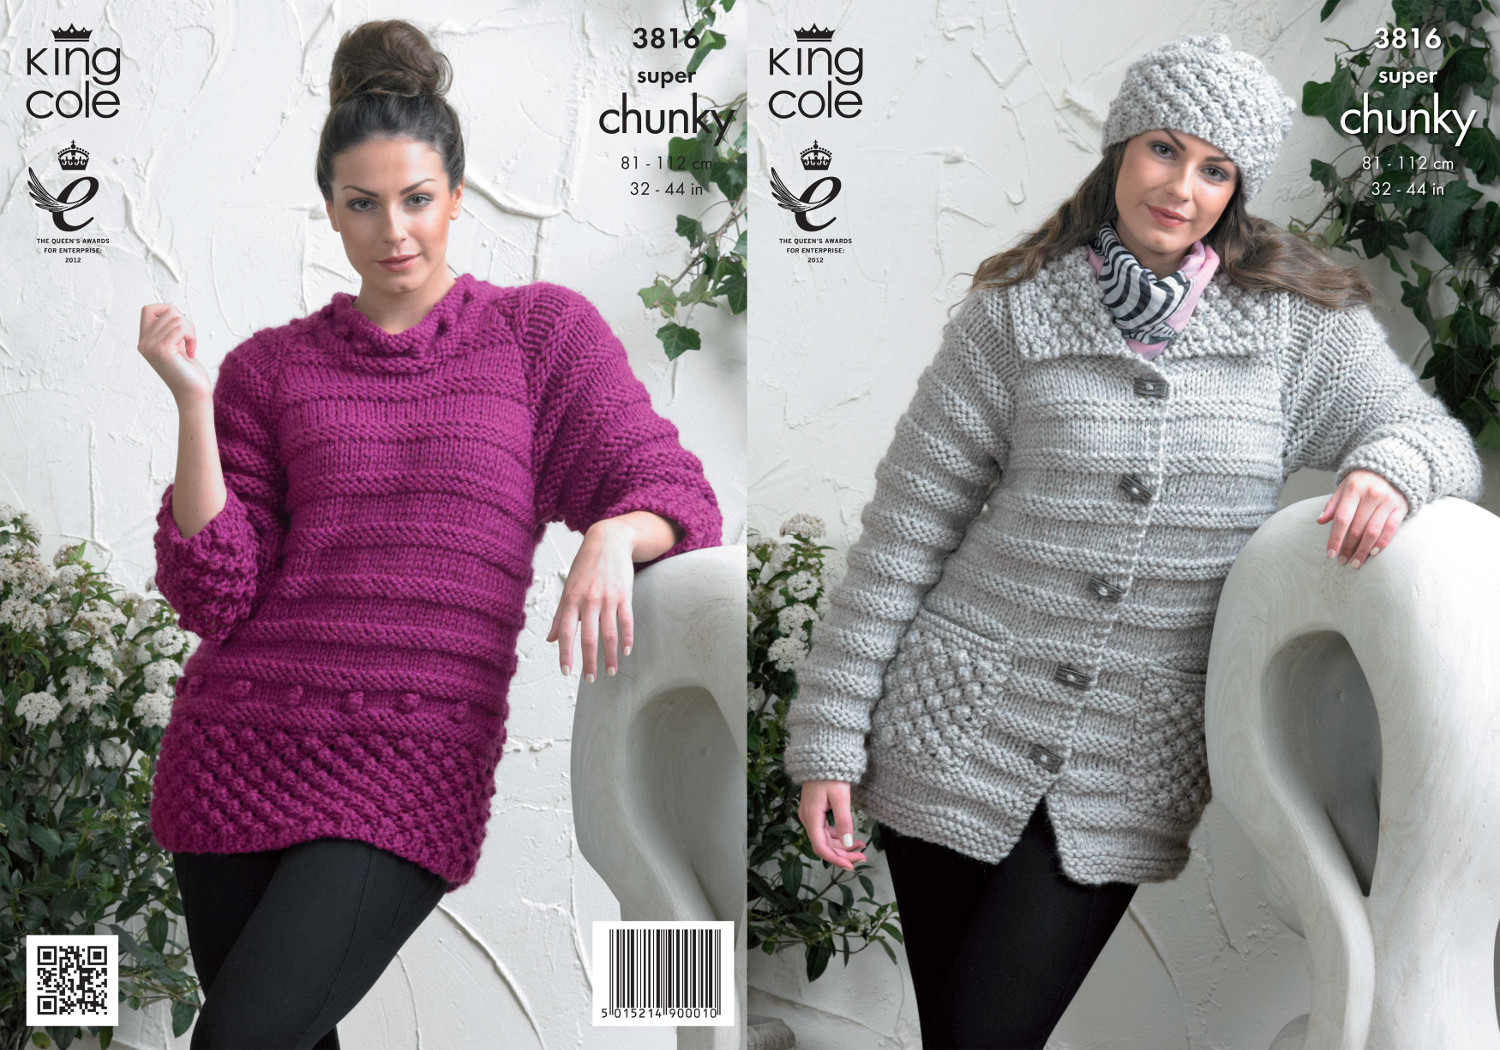 King Cole Ladies Knitting Pattern Womens Super Chunky Jacket Sweater ...